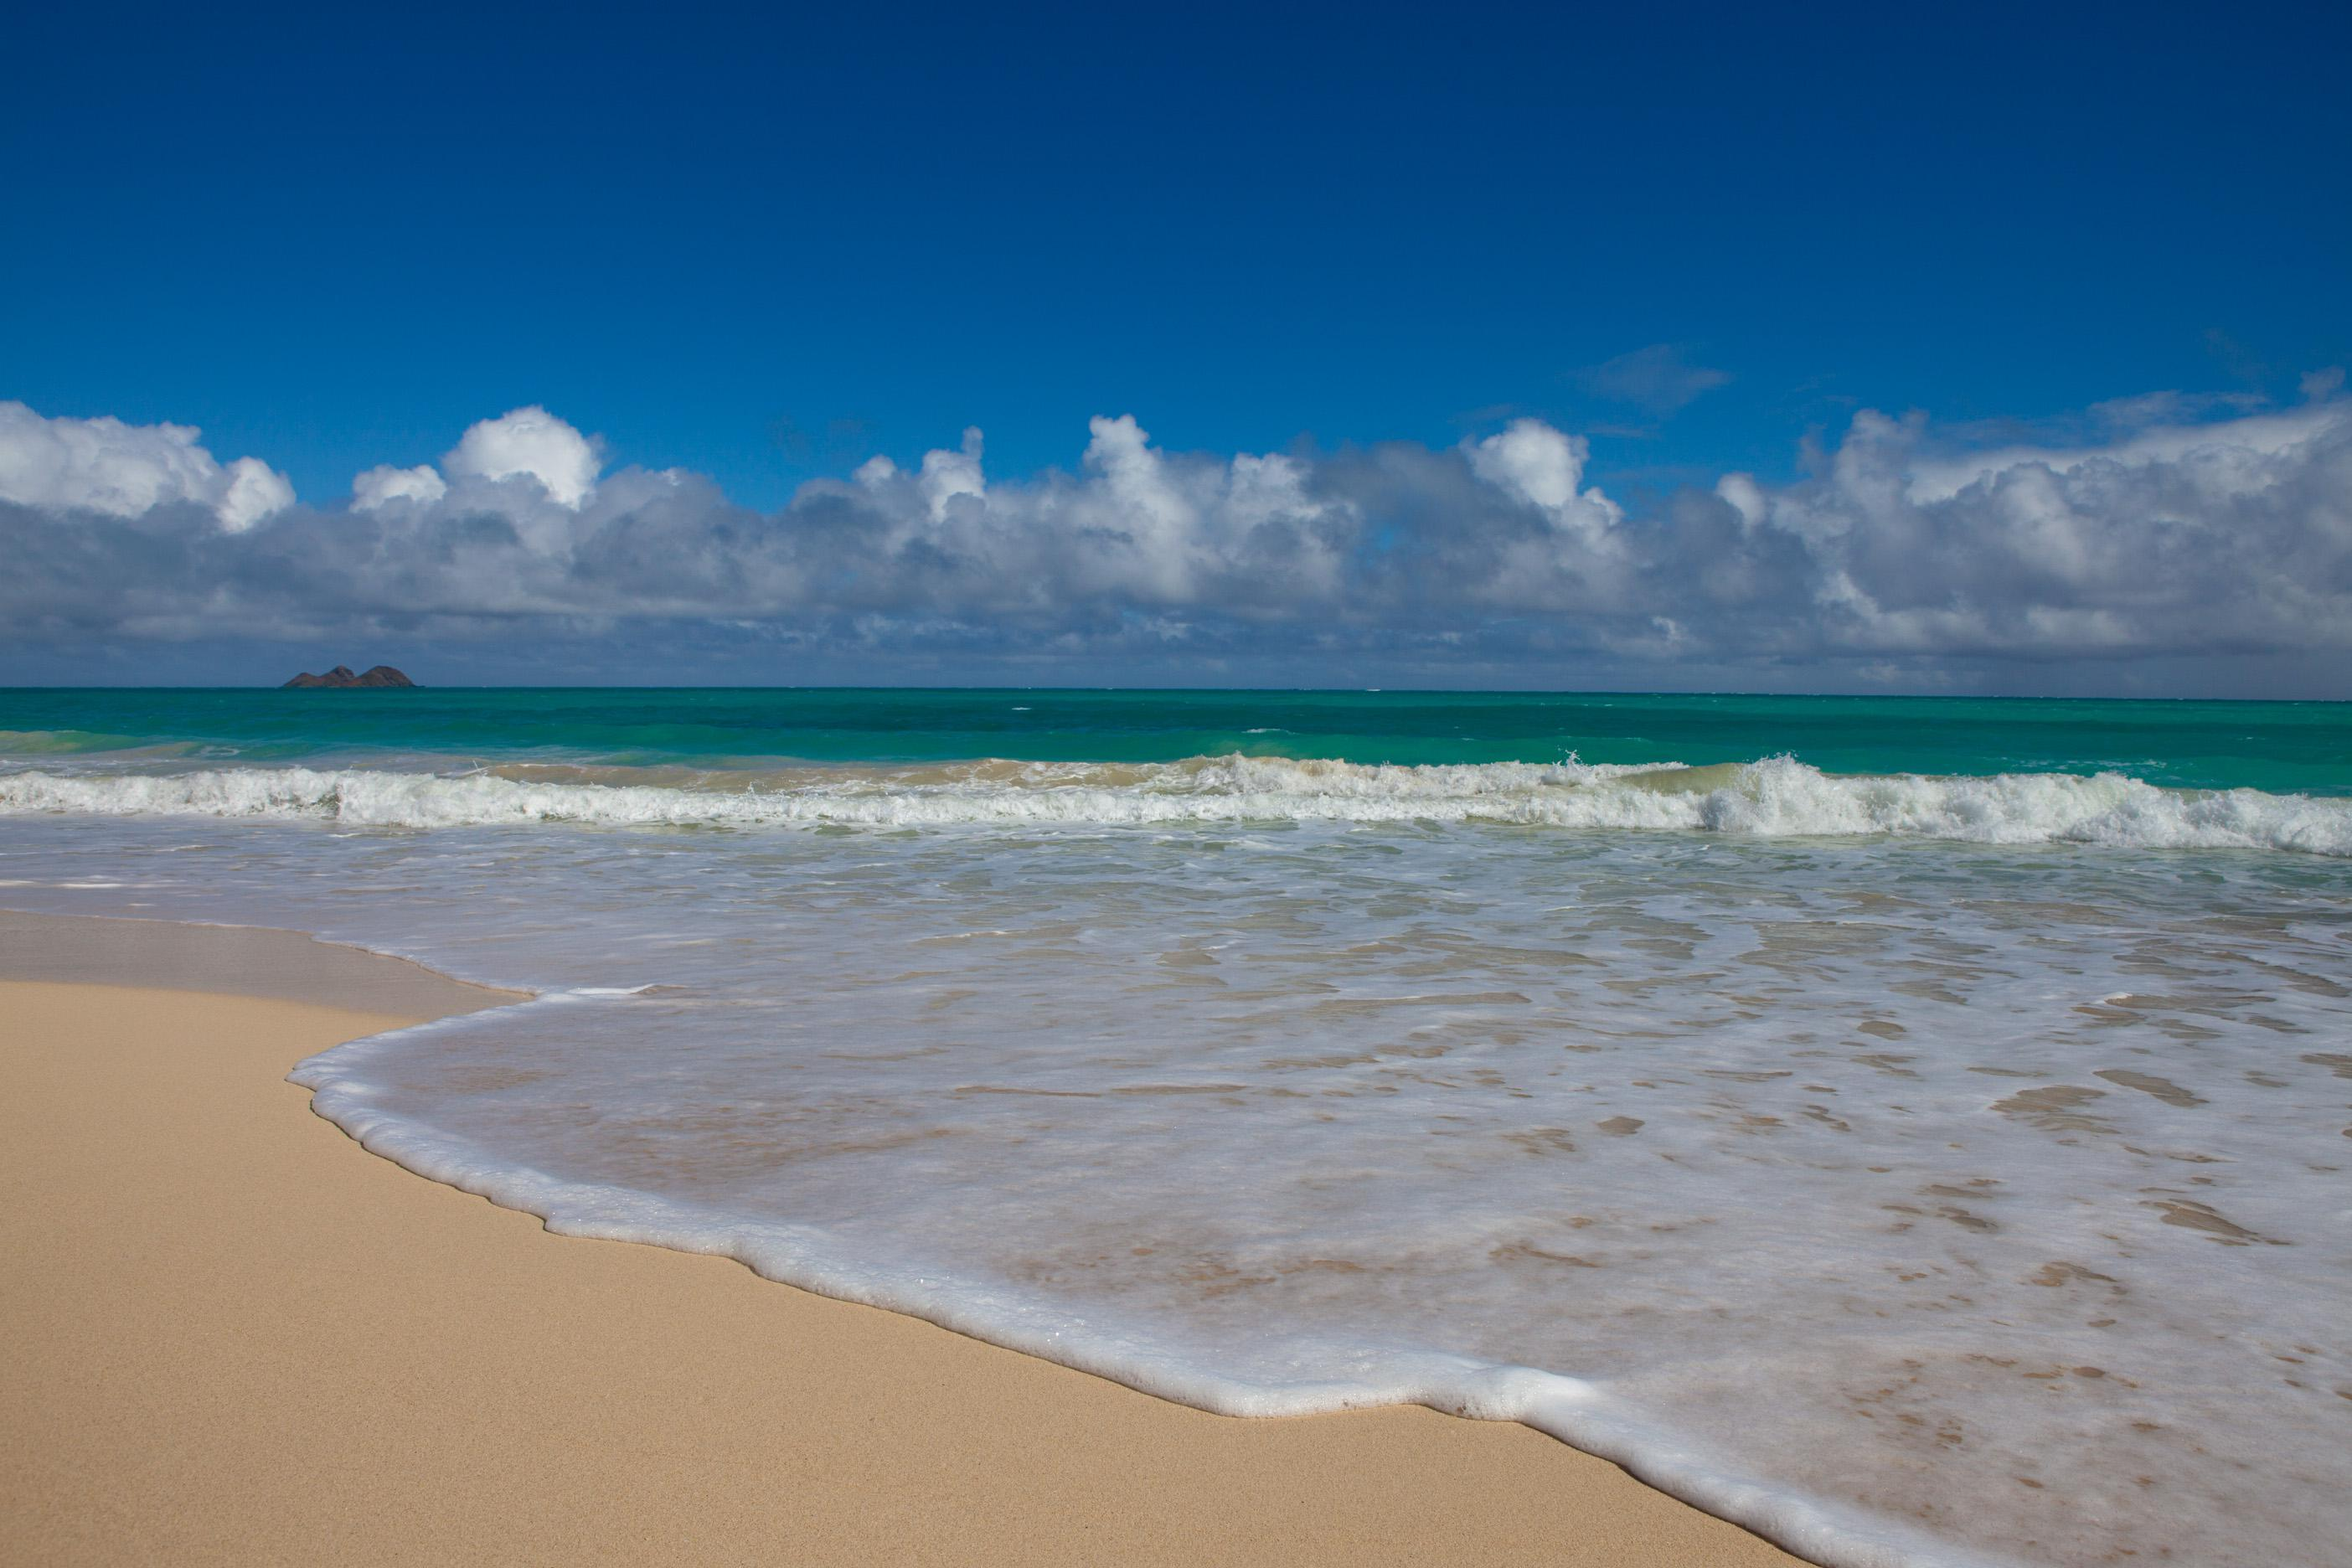 """Oahu Windward (East) Shore<br />Photo <a href=""""//creativecommons.org/licences/by-nc-sa/3.0/"""" class=""""cc-small"""" target=""""_blank""""><img typeof=""""foaf:Image"""" class=""""image-style-none"""" src=""""//i.creativecommons.org/l/by-nc-sa/3.0/80x15.png"""" width=""""80px"""" height=""""15px"""" alt=""""Creative Commons Licence"""" /></a> <a href=""""https://www.flickr.com/photos/79295762@N00/8500087475"""">Junichi Ishito</a>"""